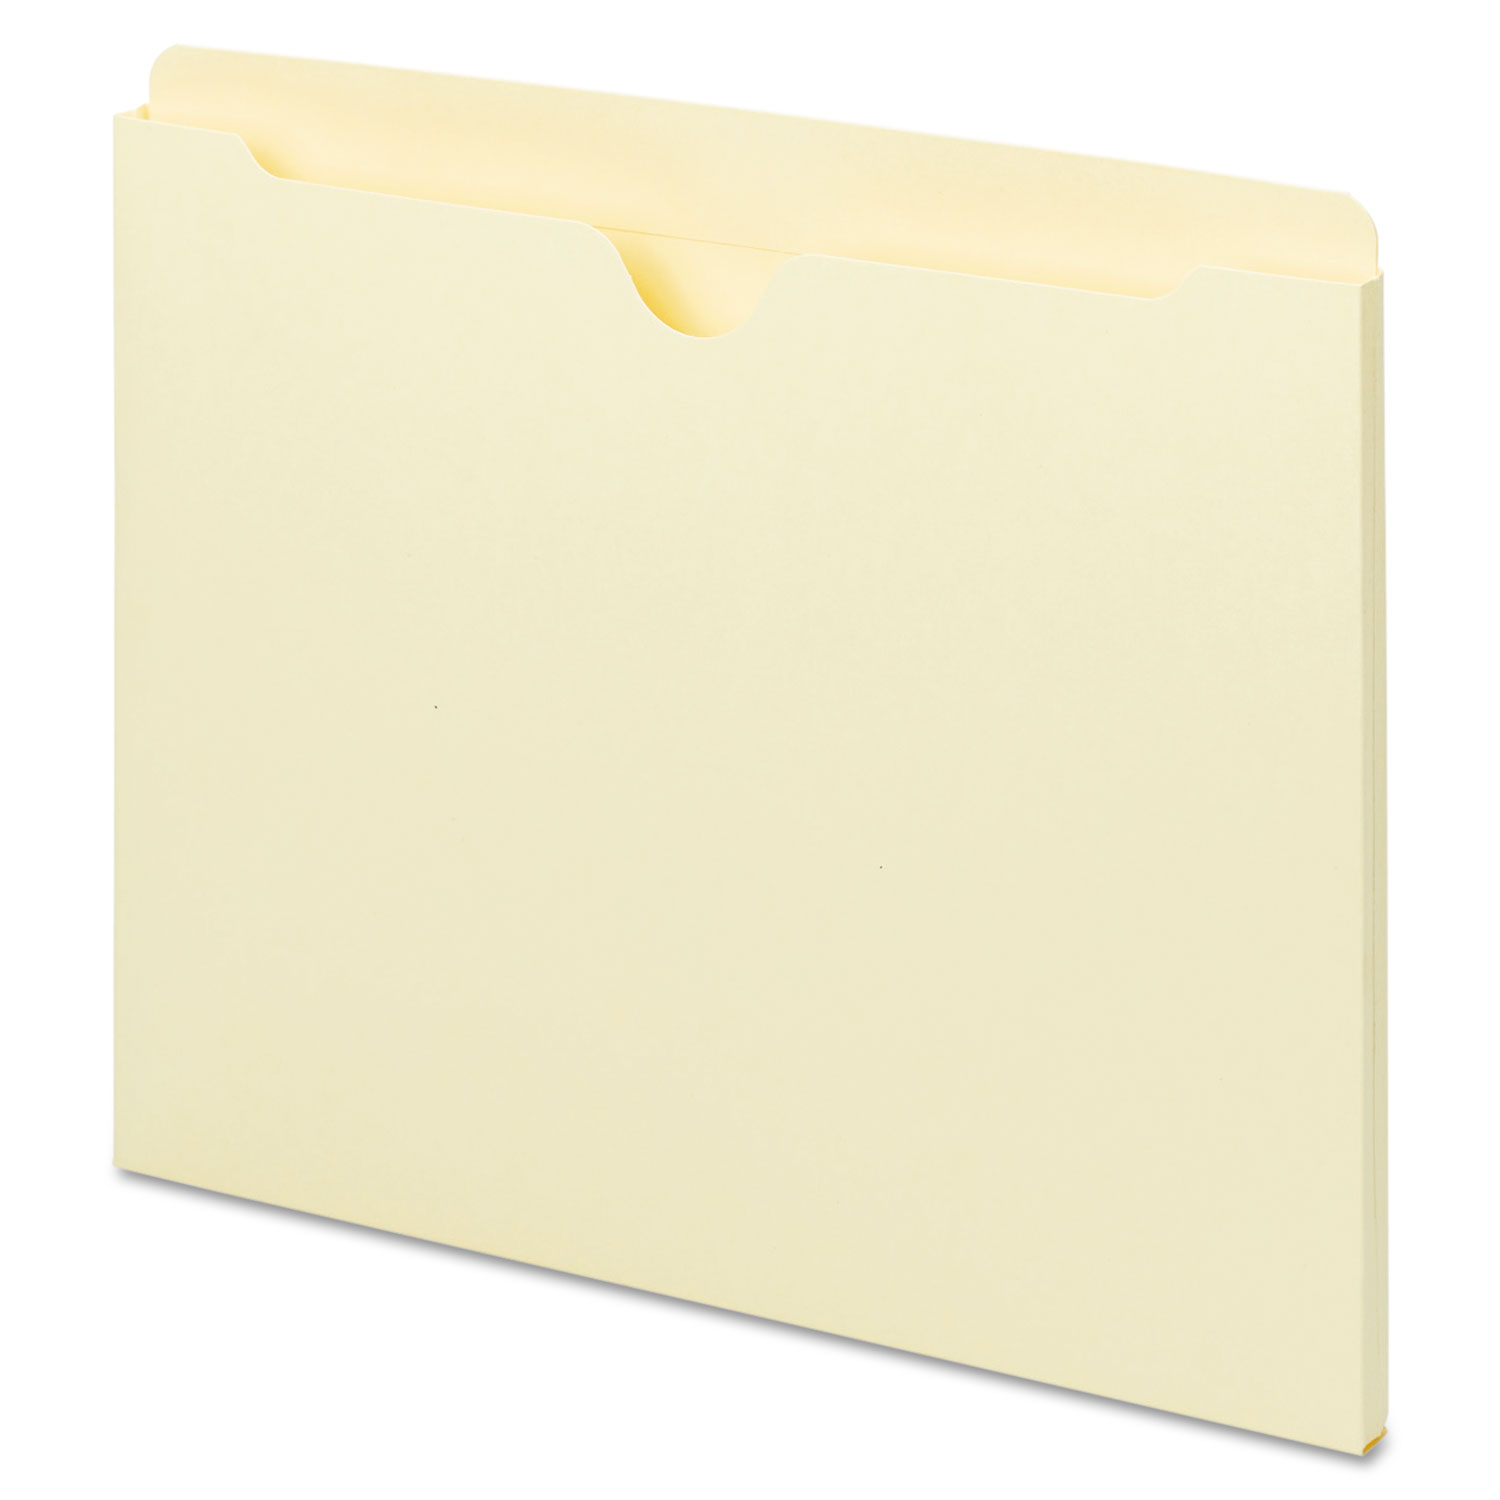 Deluxe Manila File Jackets with Reinforced Tabs, Straight Tab, Letter Size, Manila, 100/Box